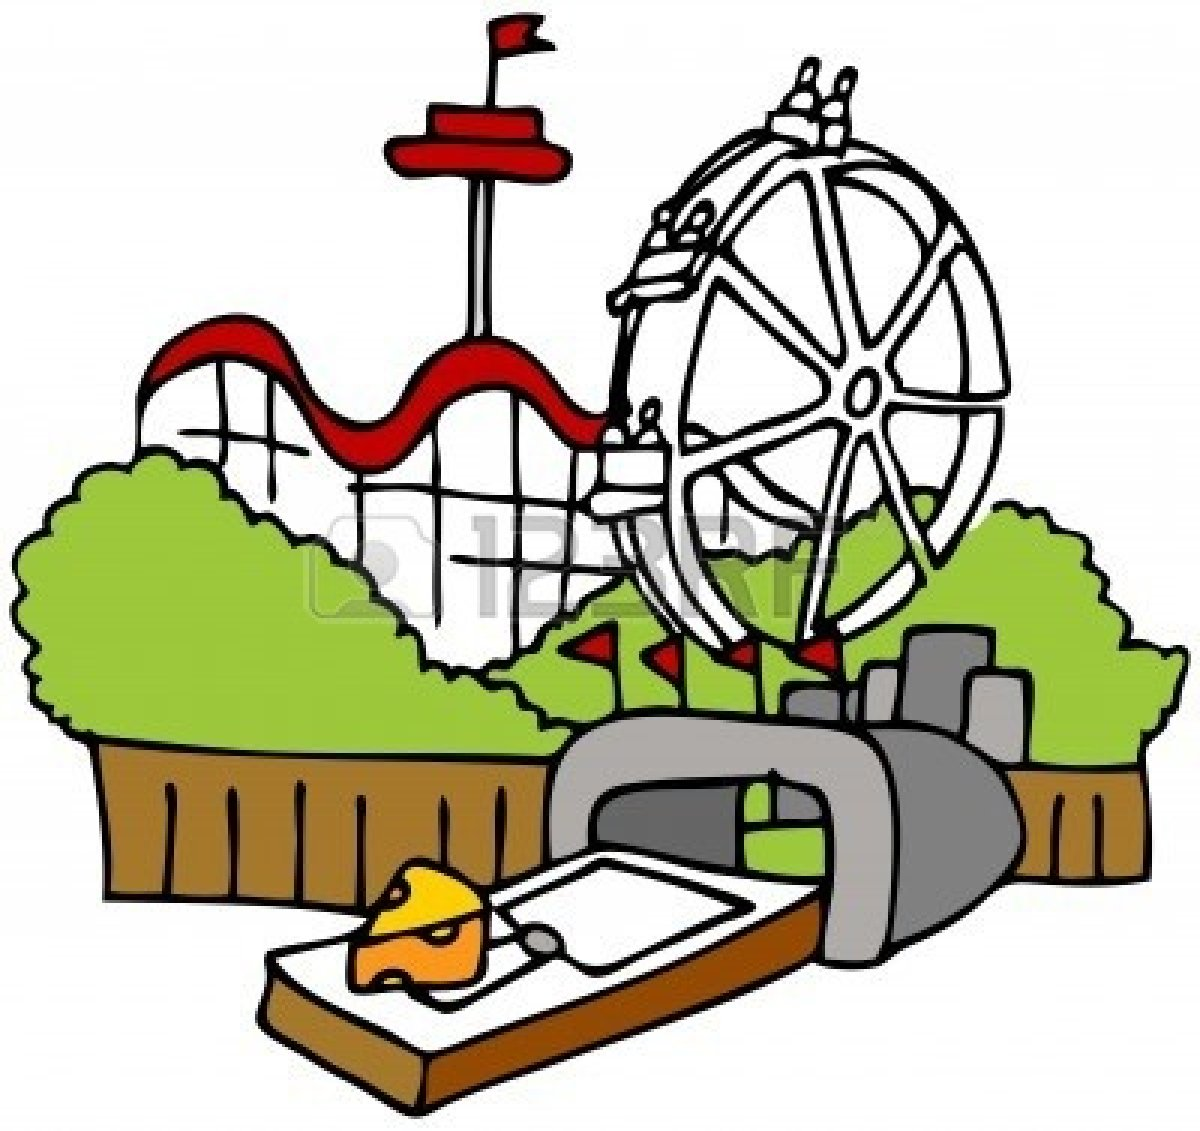 Disney amusement park clipart.